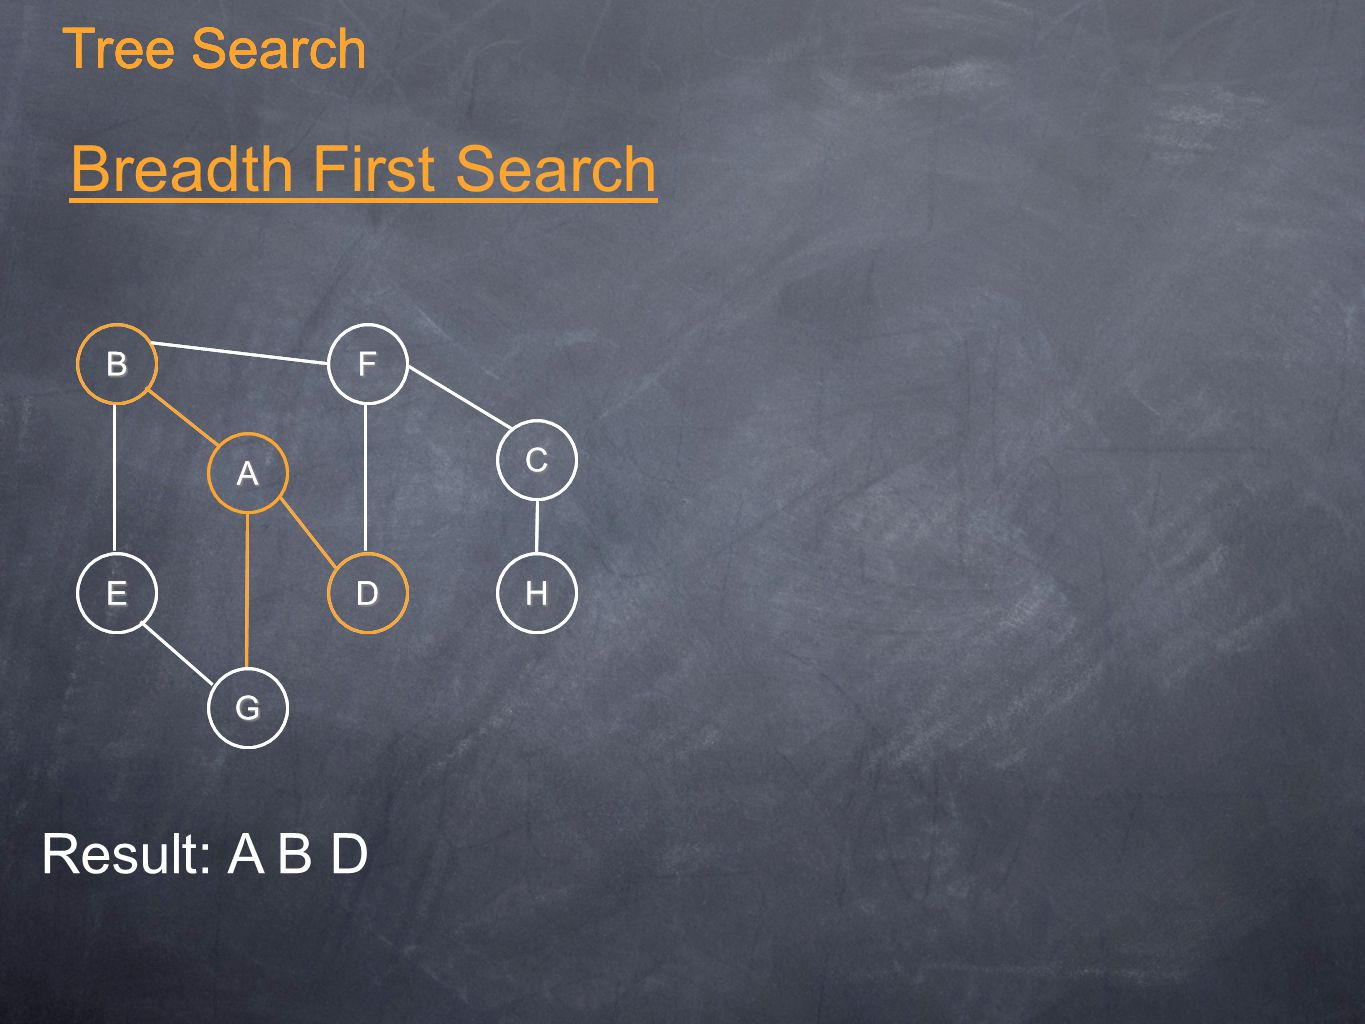 Breadth First Search A B C G E F DH Result: A B D Tree Search A B C G E F DH